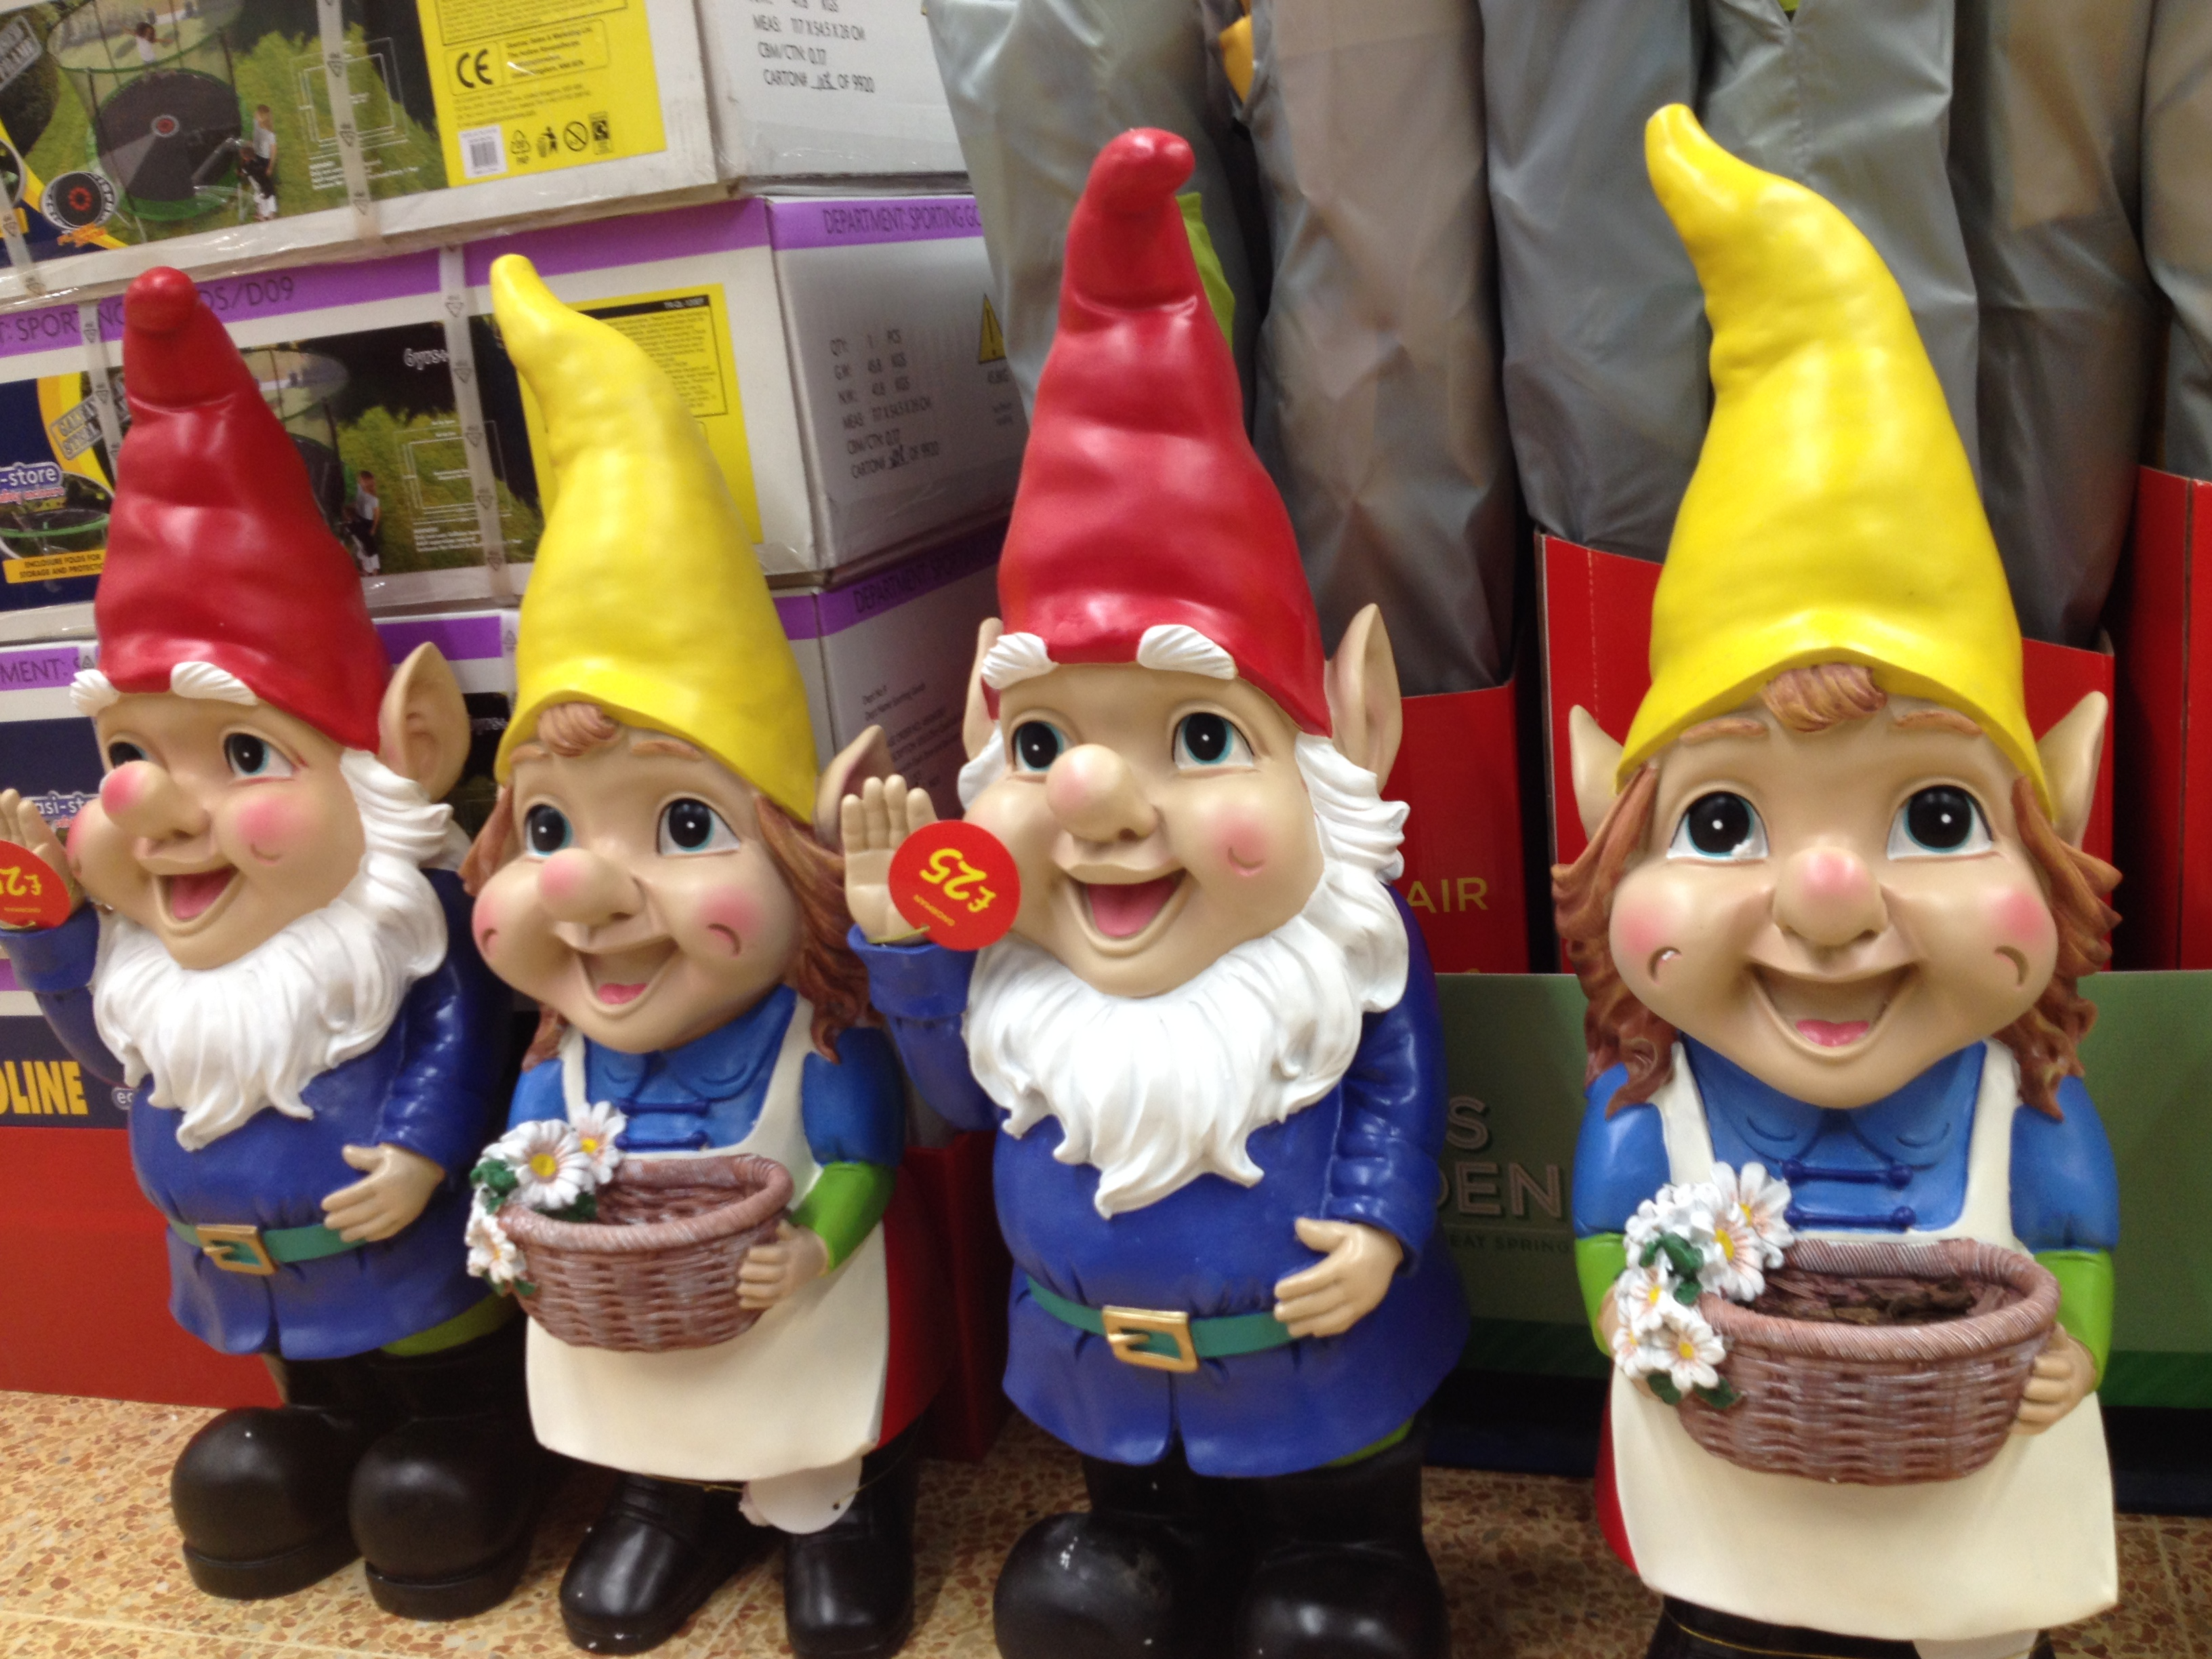 Gnome Garden: GHOSTLY TOM'S TRAVEL BLOG…